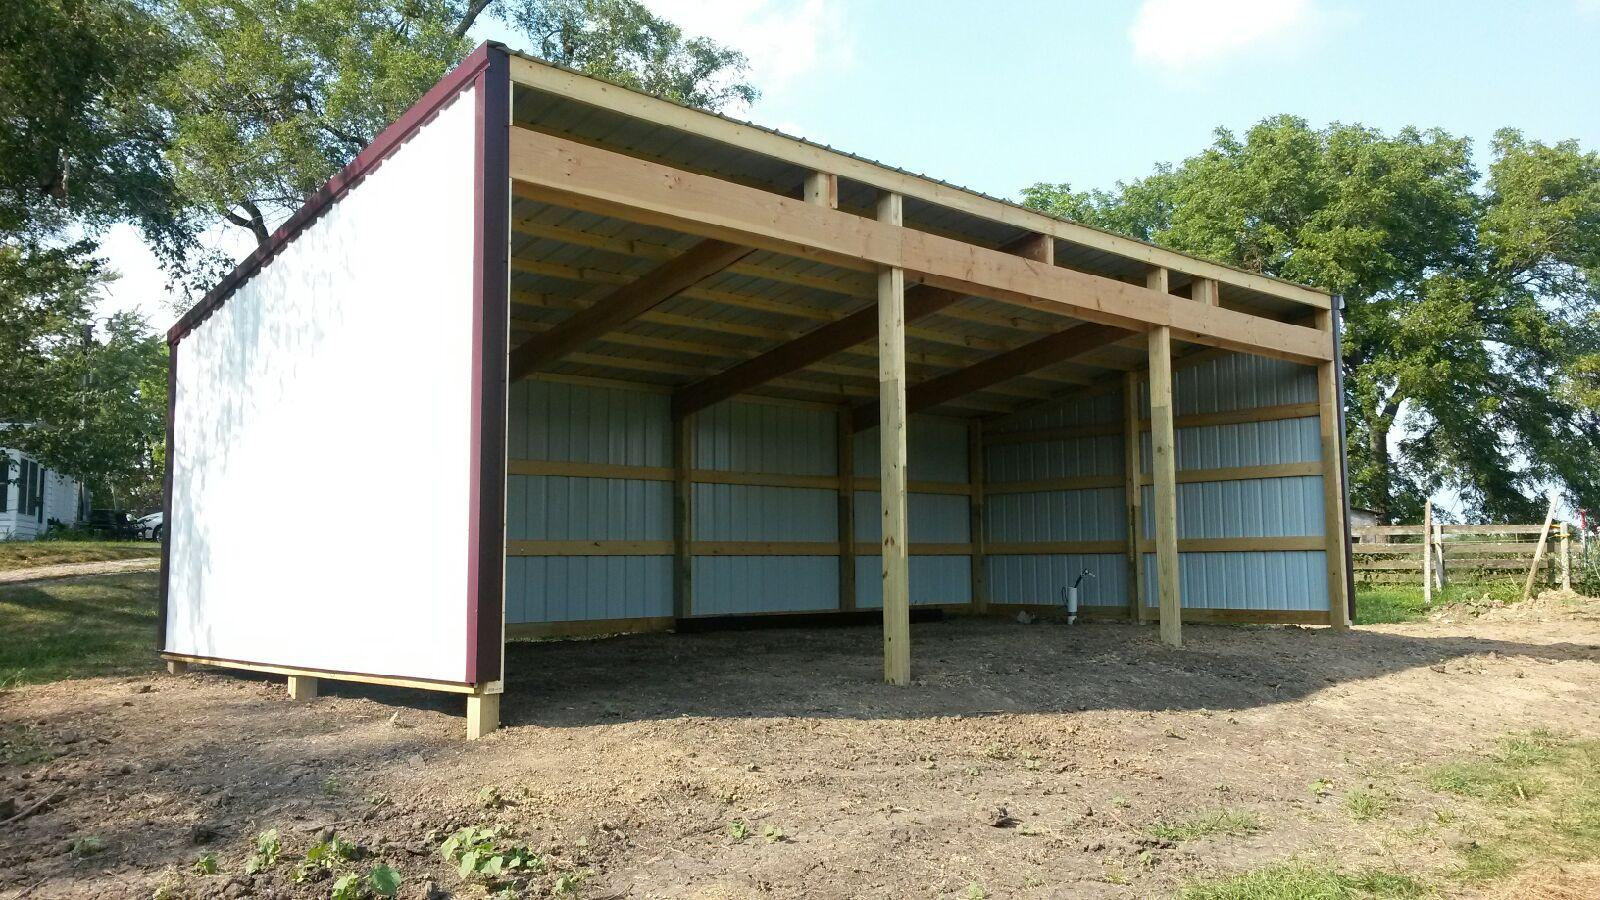 92 lean to pole barn plans barn plans carports a for How to build a pole shed step by step